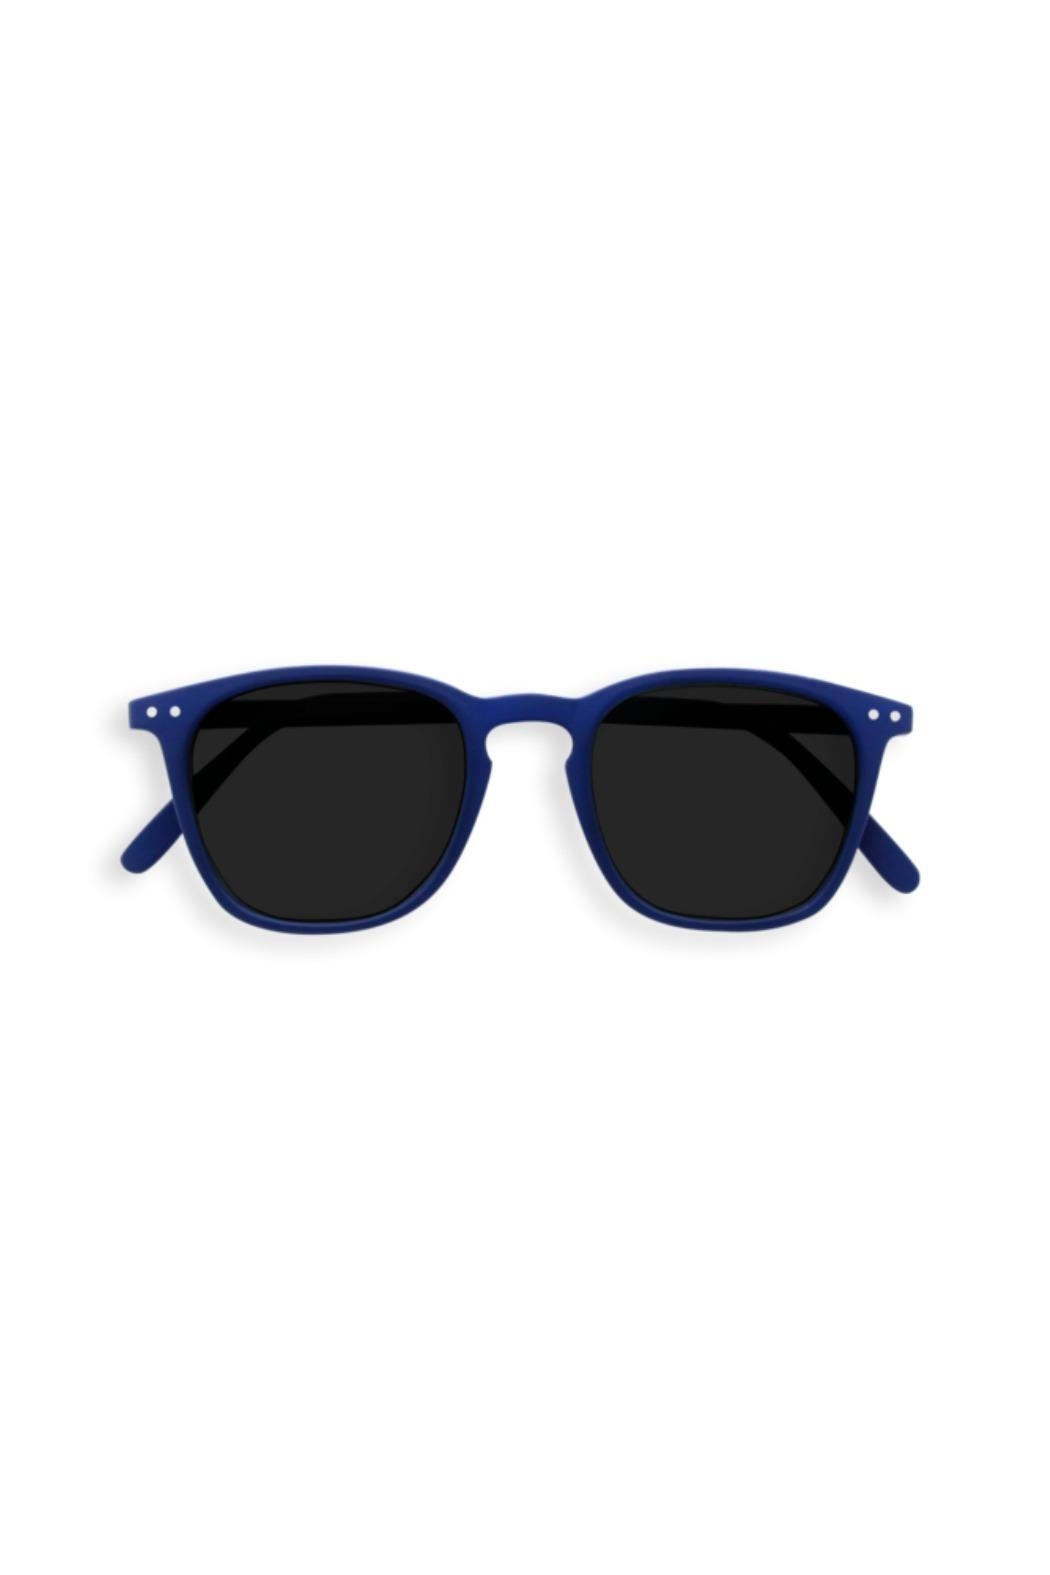 See Concept Navy Blue Sunglasses - Main Image